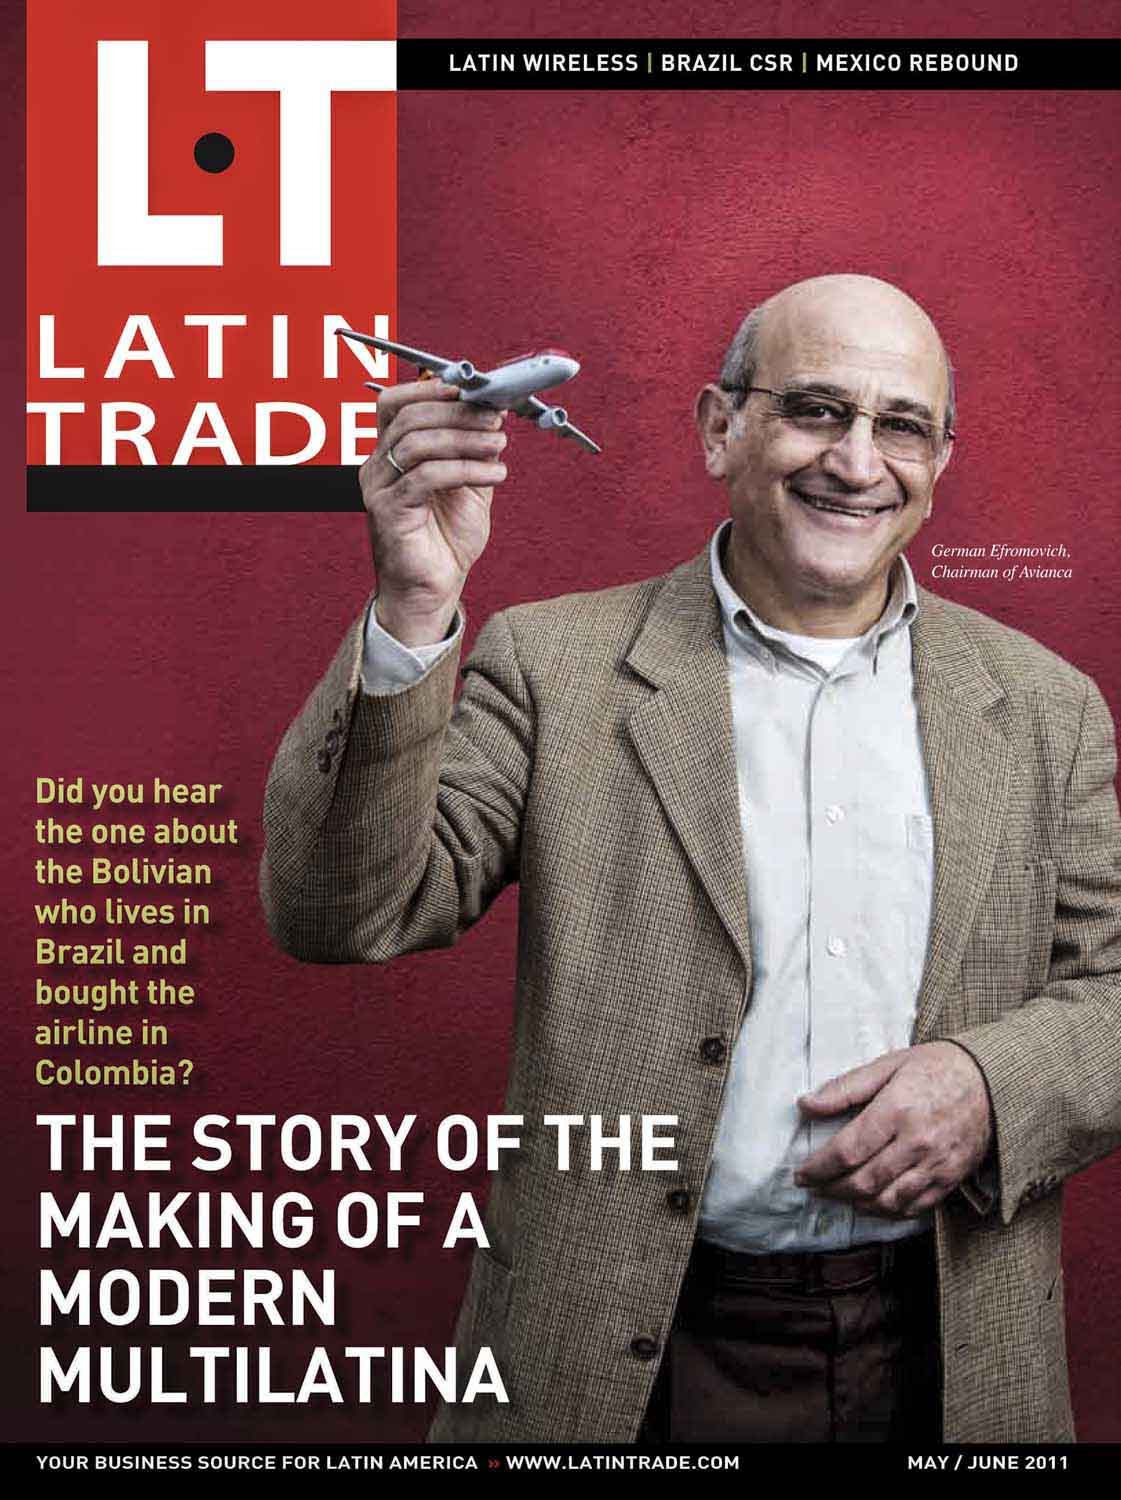 Latin Trade Magazine, German Efranovich, Avianca CEO.